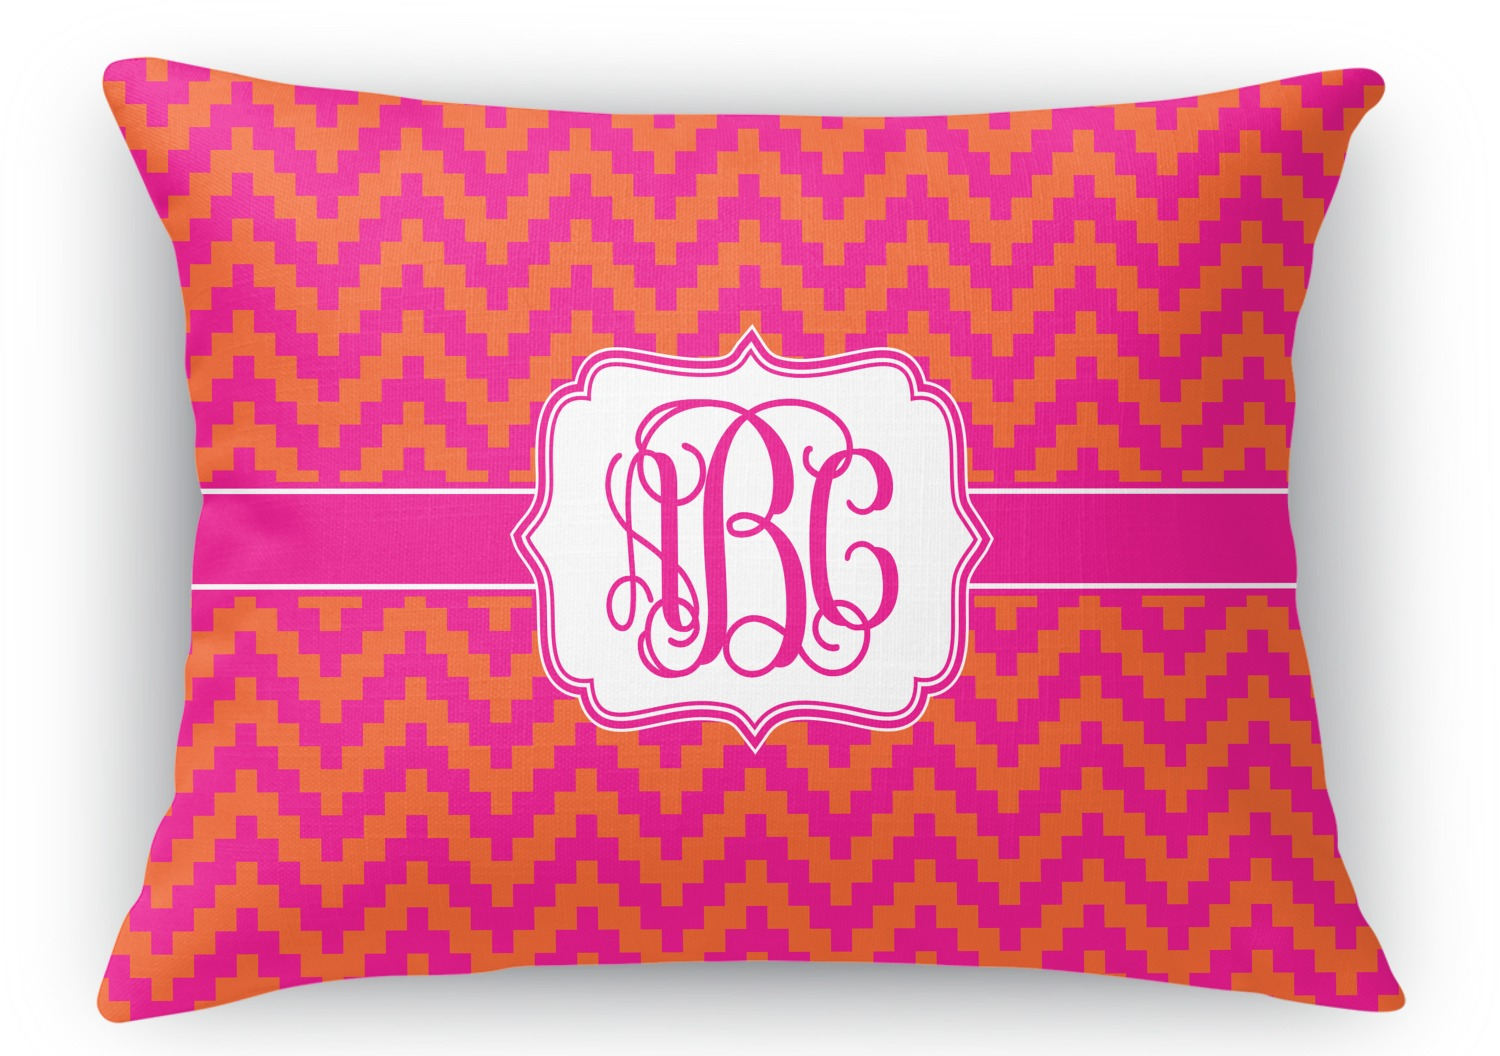 Pink & Orange Chevron Rectangular Throw Pillow - 12